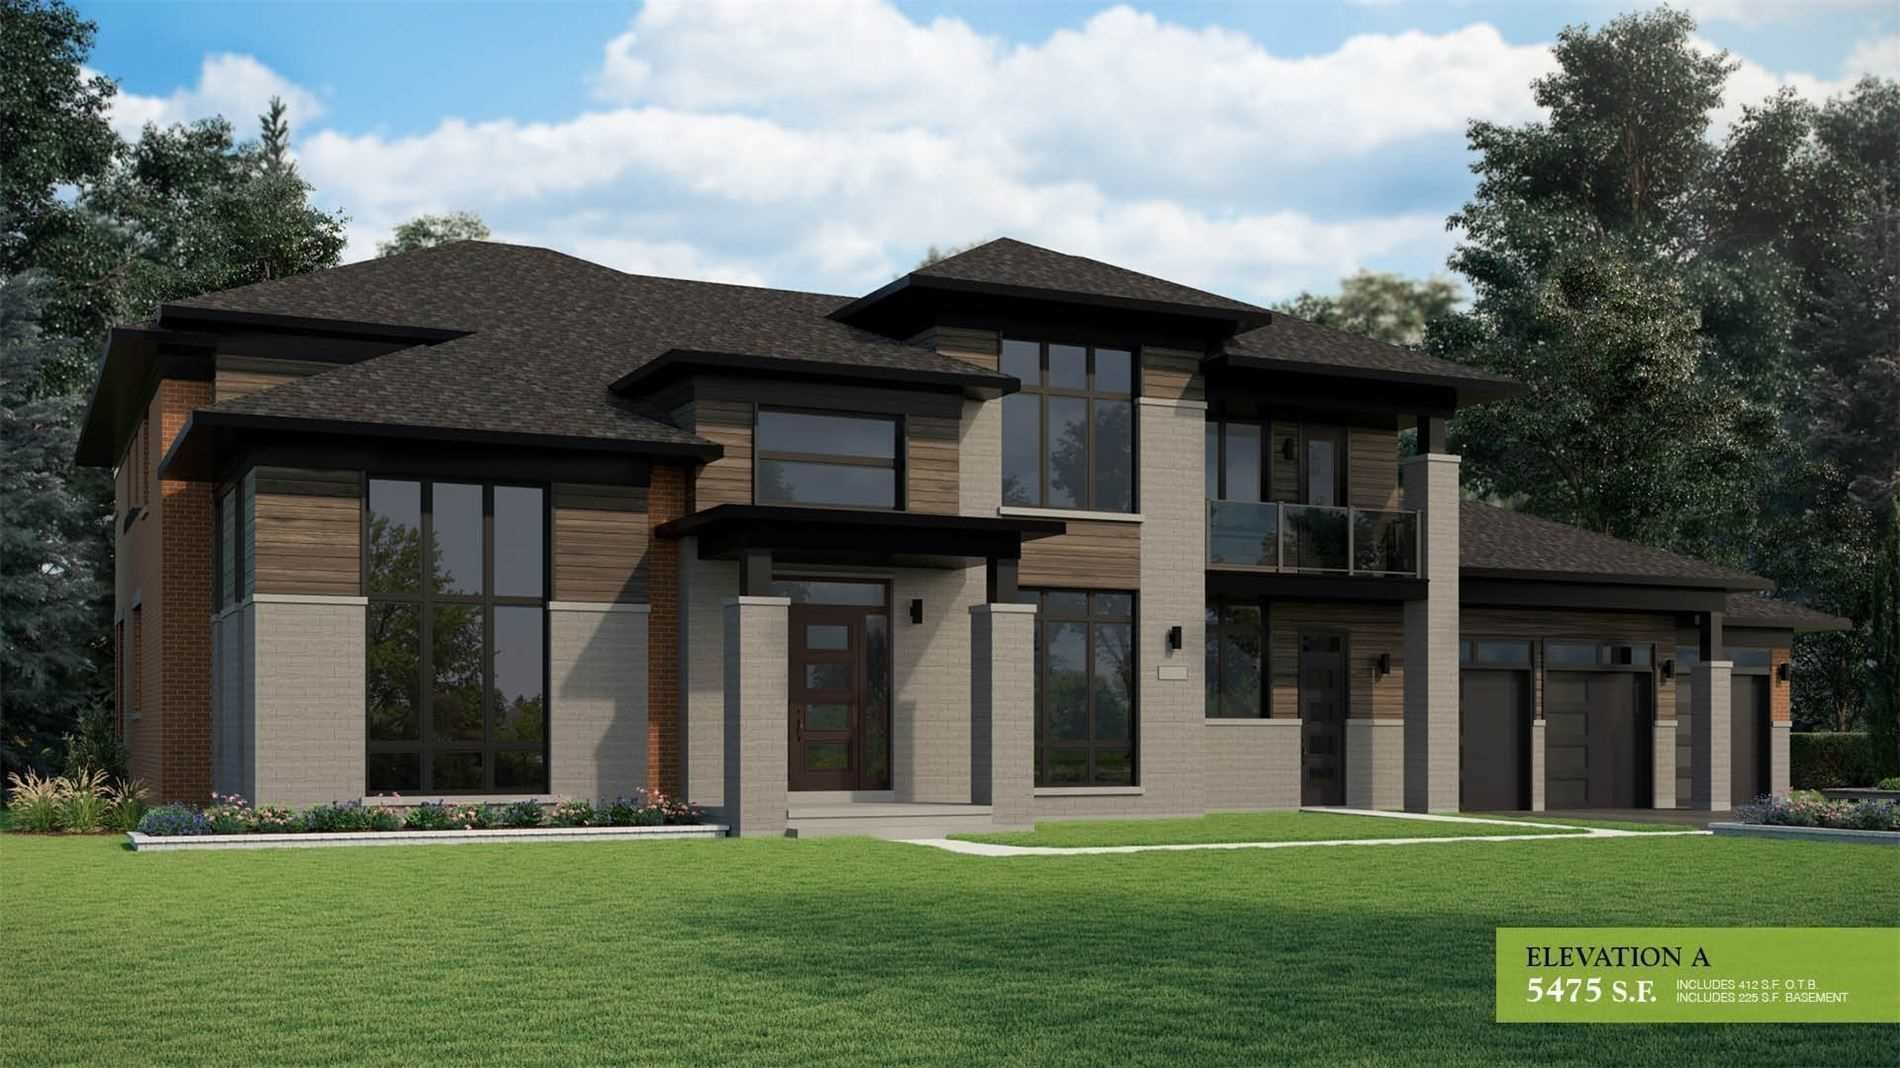 20  Country Lane  Dr, Caledon, ON L7E 3S2 - MLS#: W5210336